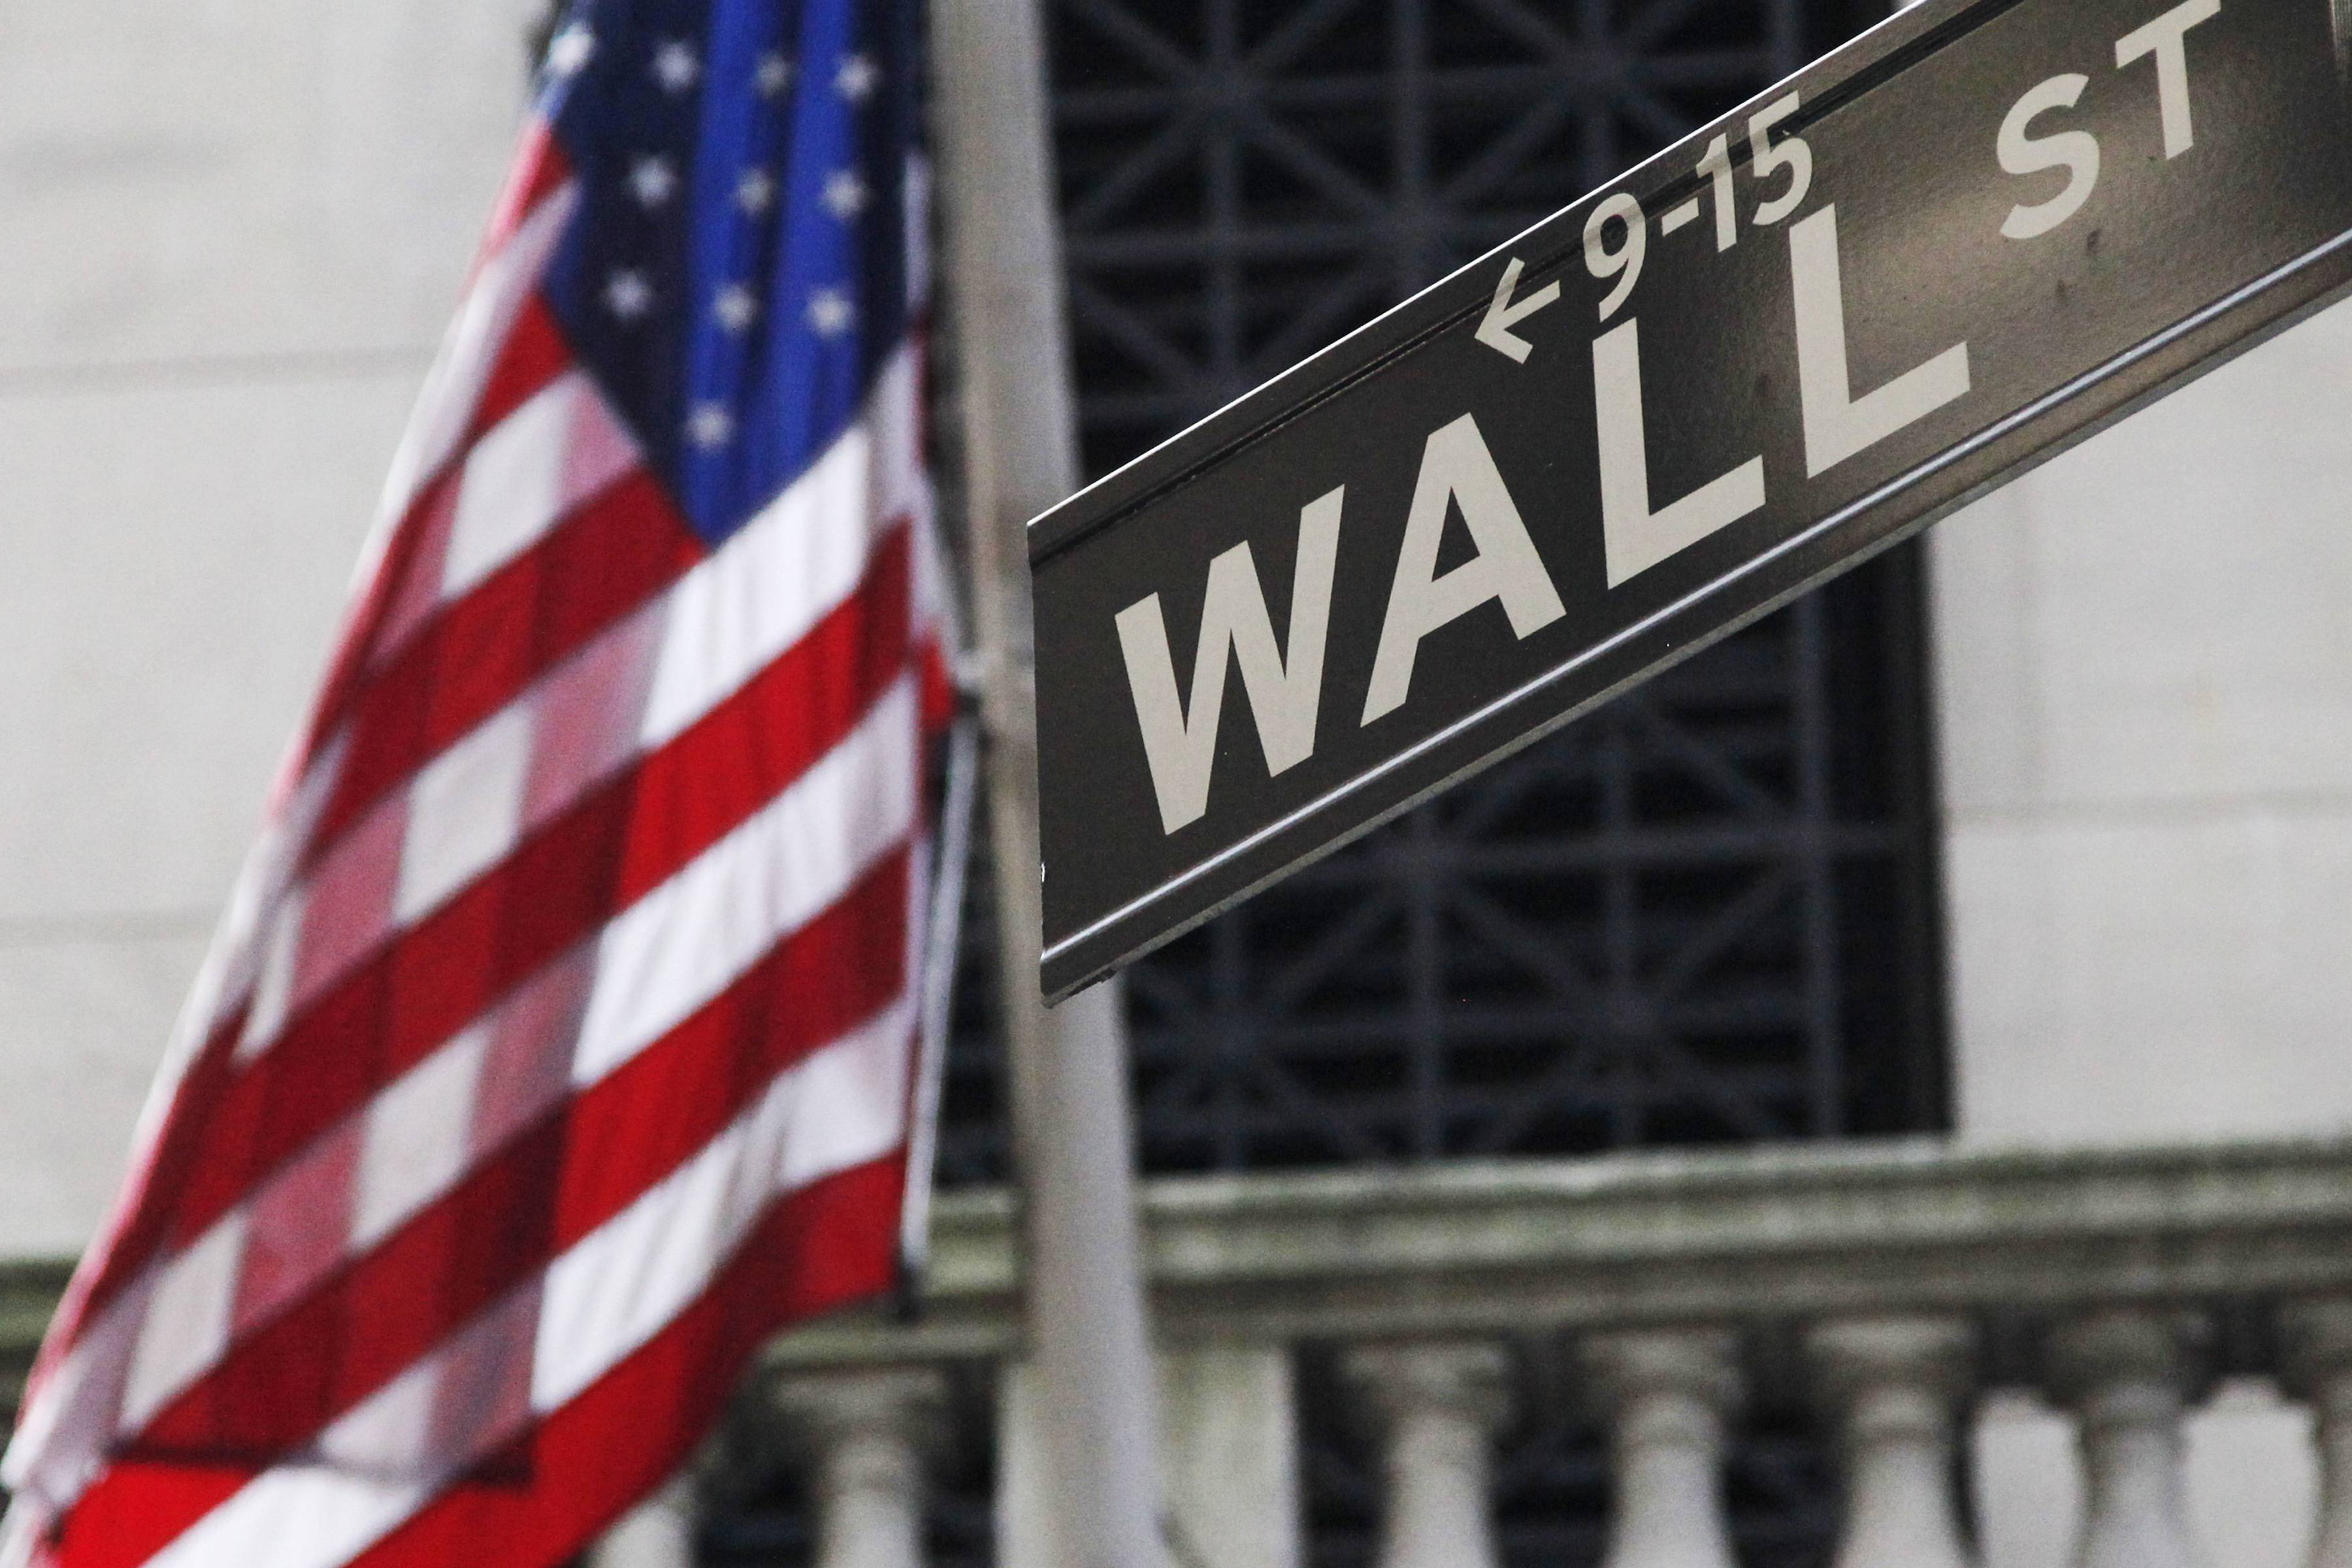 The American flag and Wall St. street sign outside the New York Stock Exchange, in New York.